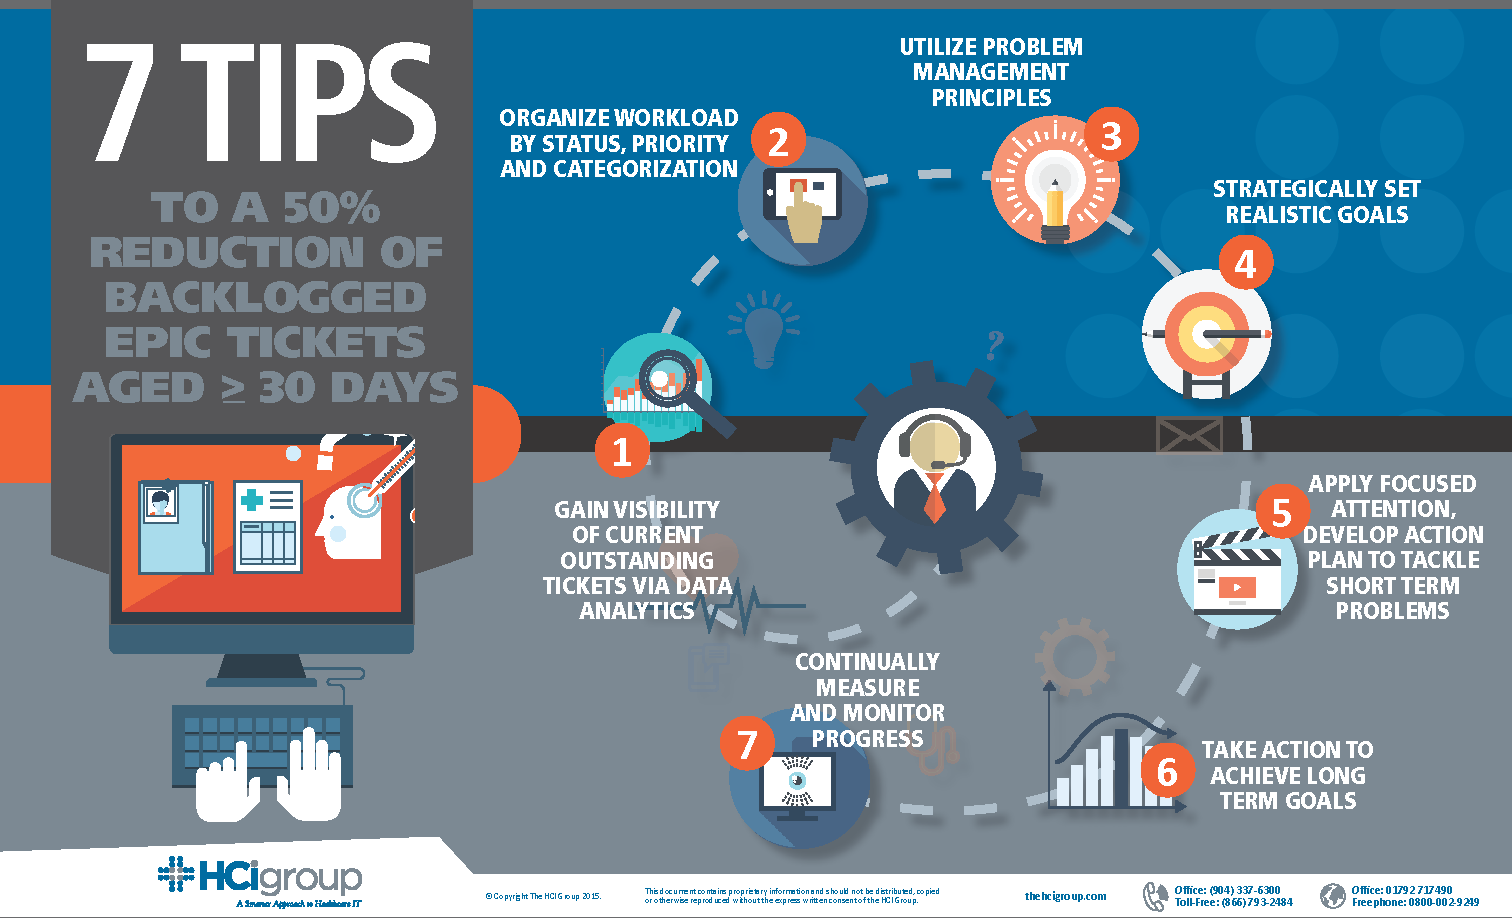 HCI_Sustain_7_Tips_to_a_50_percent_reduction_of_backlogged_epic_tickets_Infographic_05-11-15